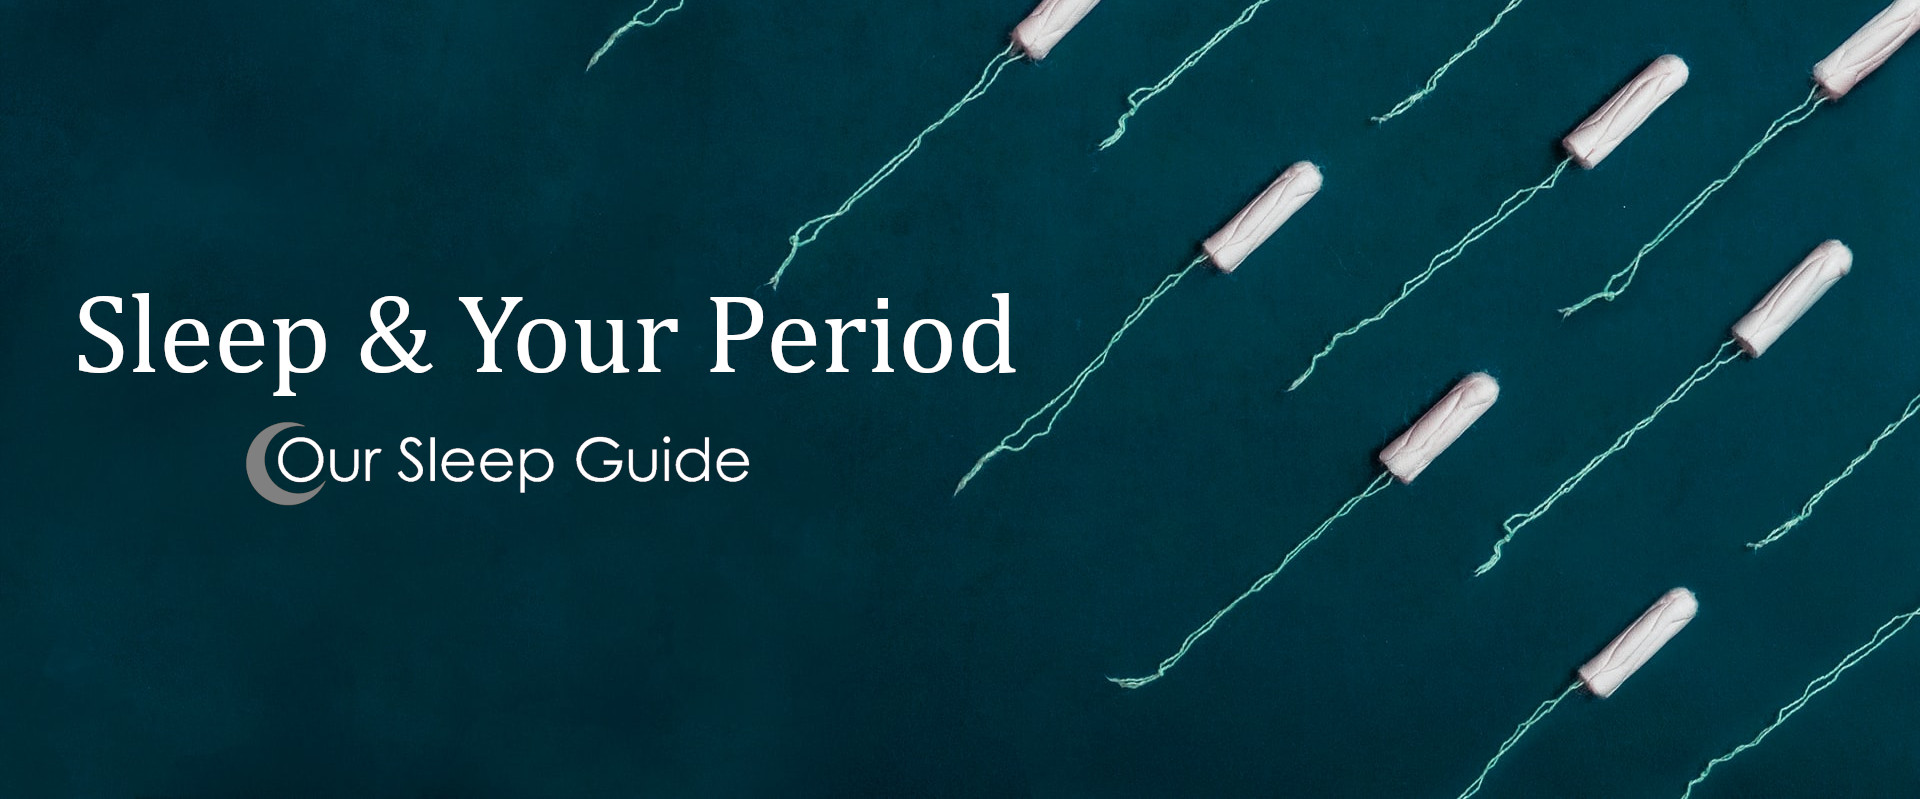 sleep and your period